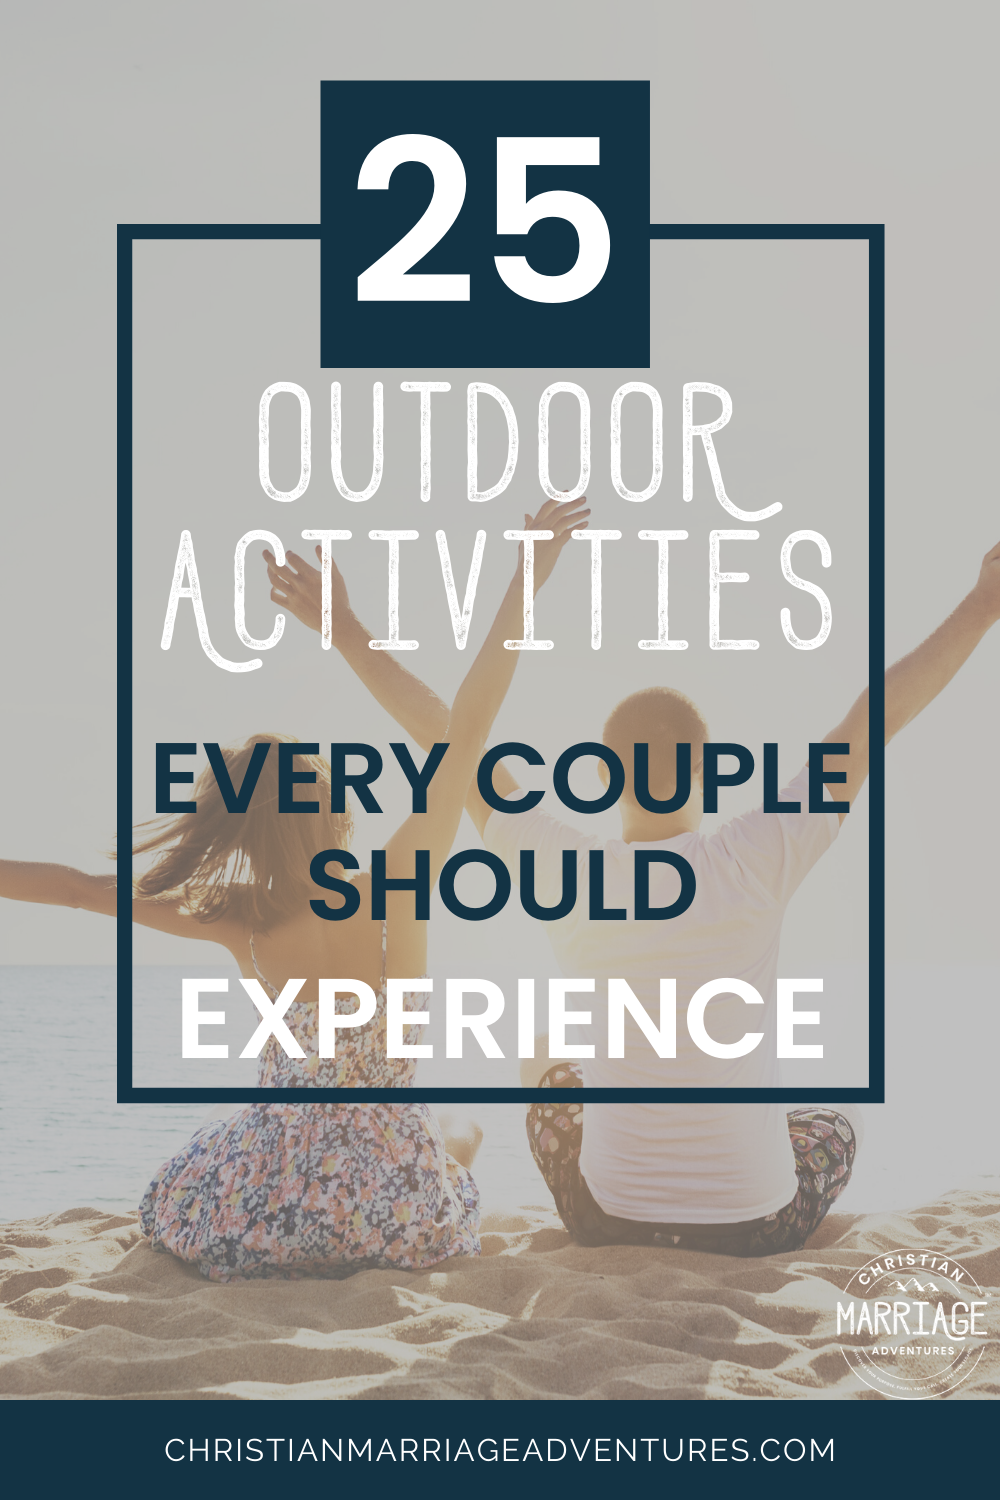 25 Outdoor Activities Every Couple Should Experience